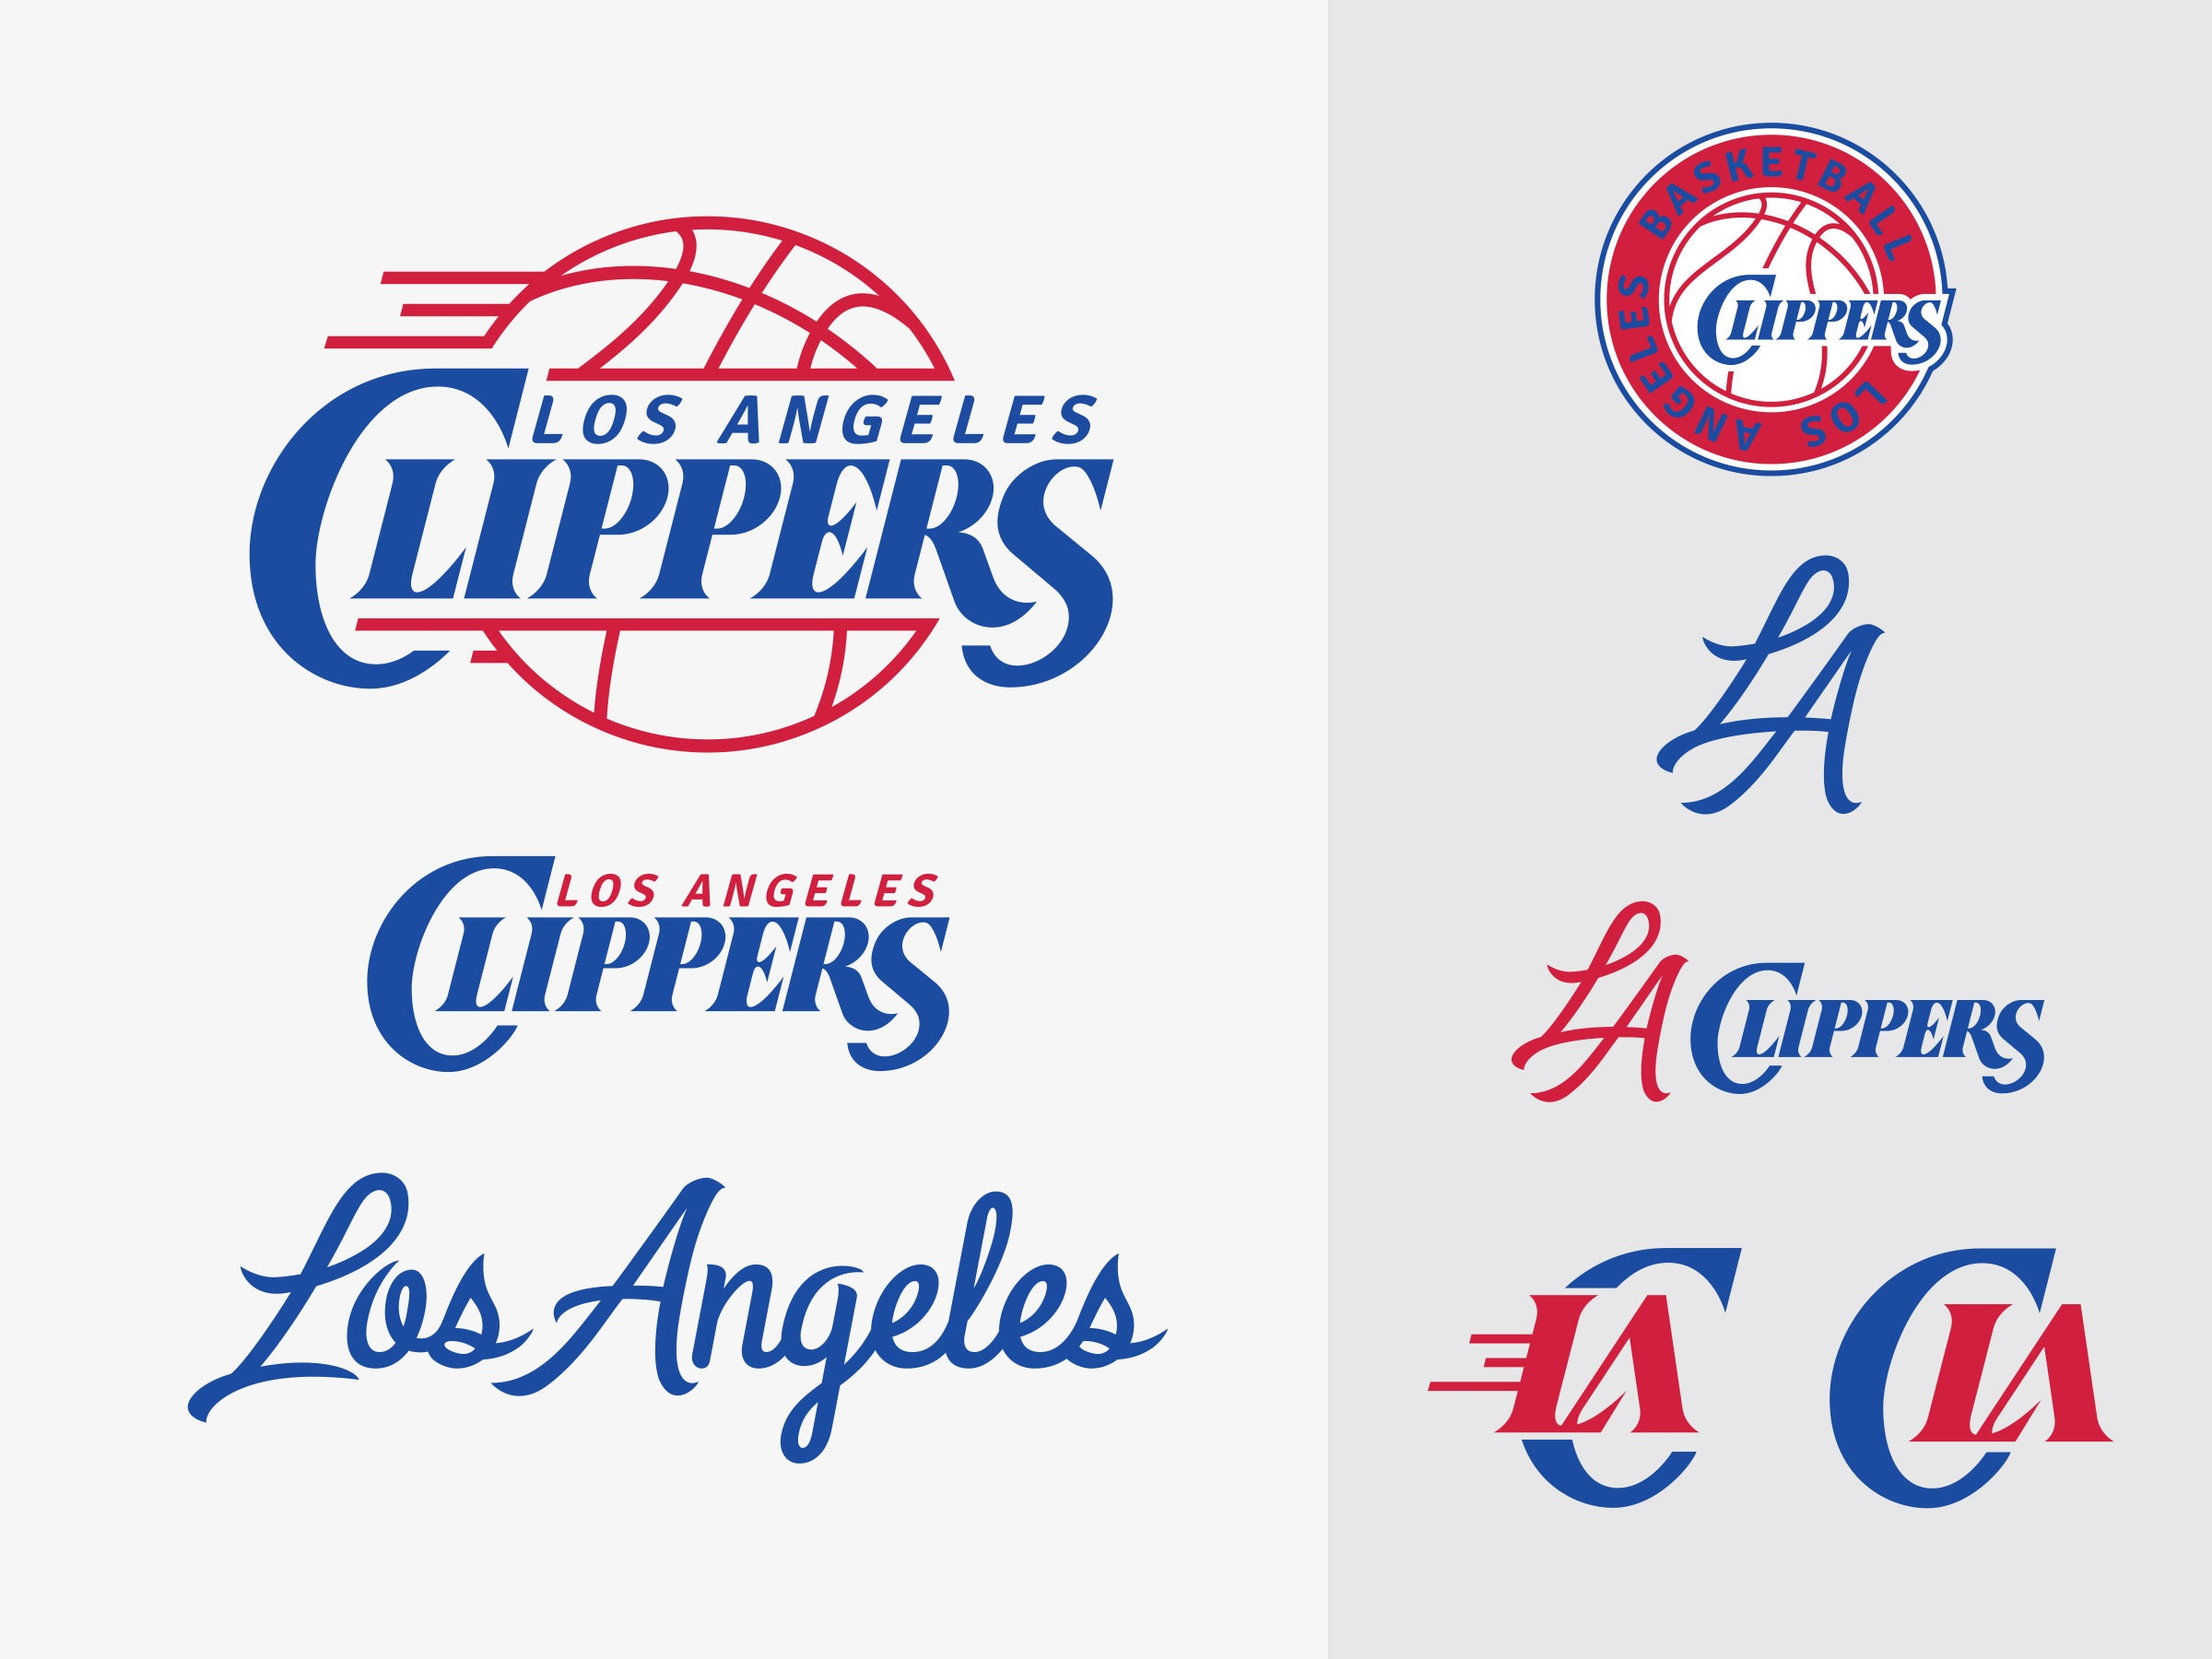 Los Angeles Clippers new logo rebrand